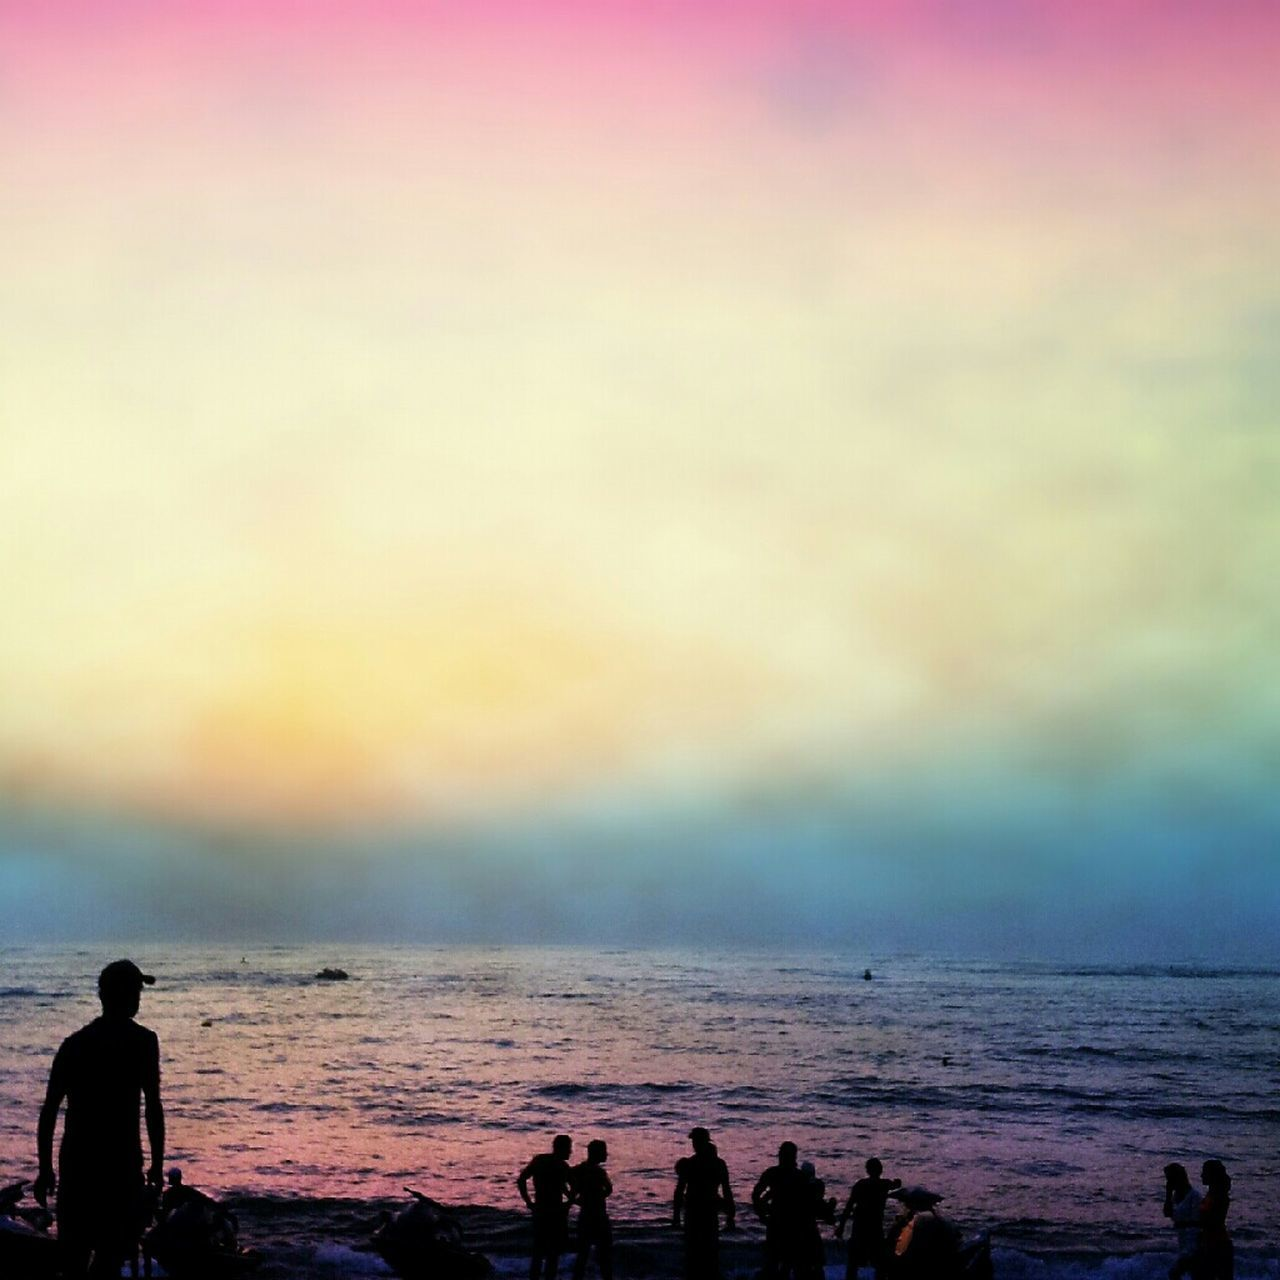 sea, sunset, real people, silhouette, water, leisure activity, beach, beauty in nature, horizon over water, nature, sky, scenics, vacations, lifestyles, outdoors, men, women, weekend activities, tranquil scene, wave, togetherness, large group of people, day, adult, people